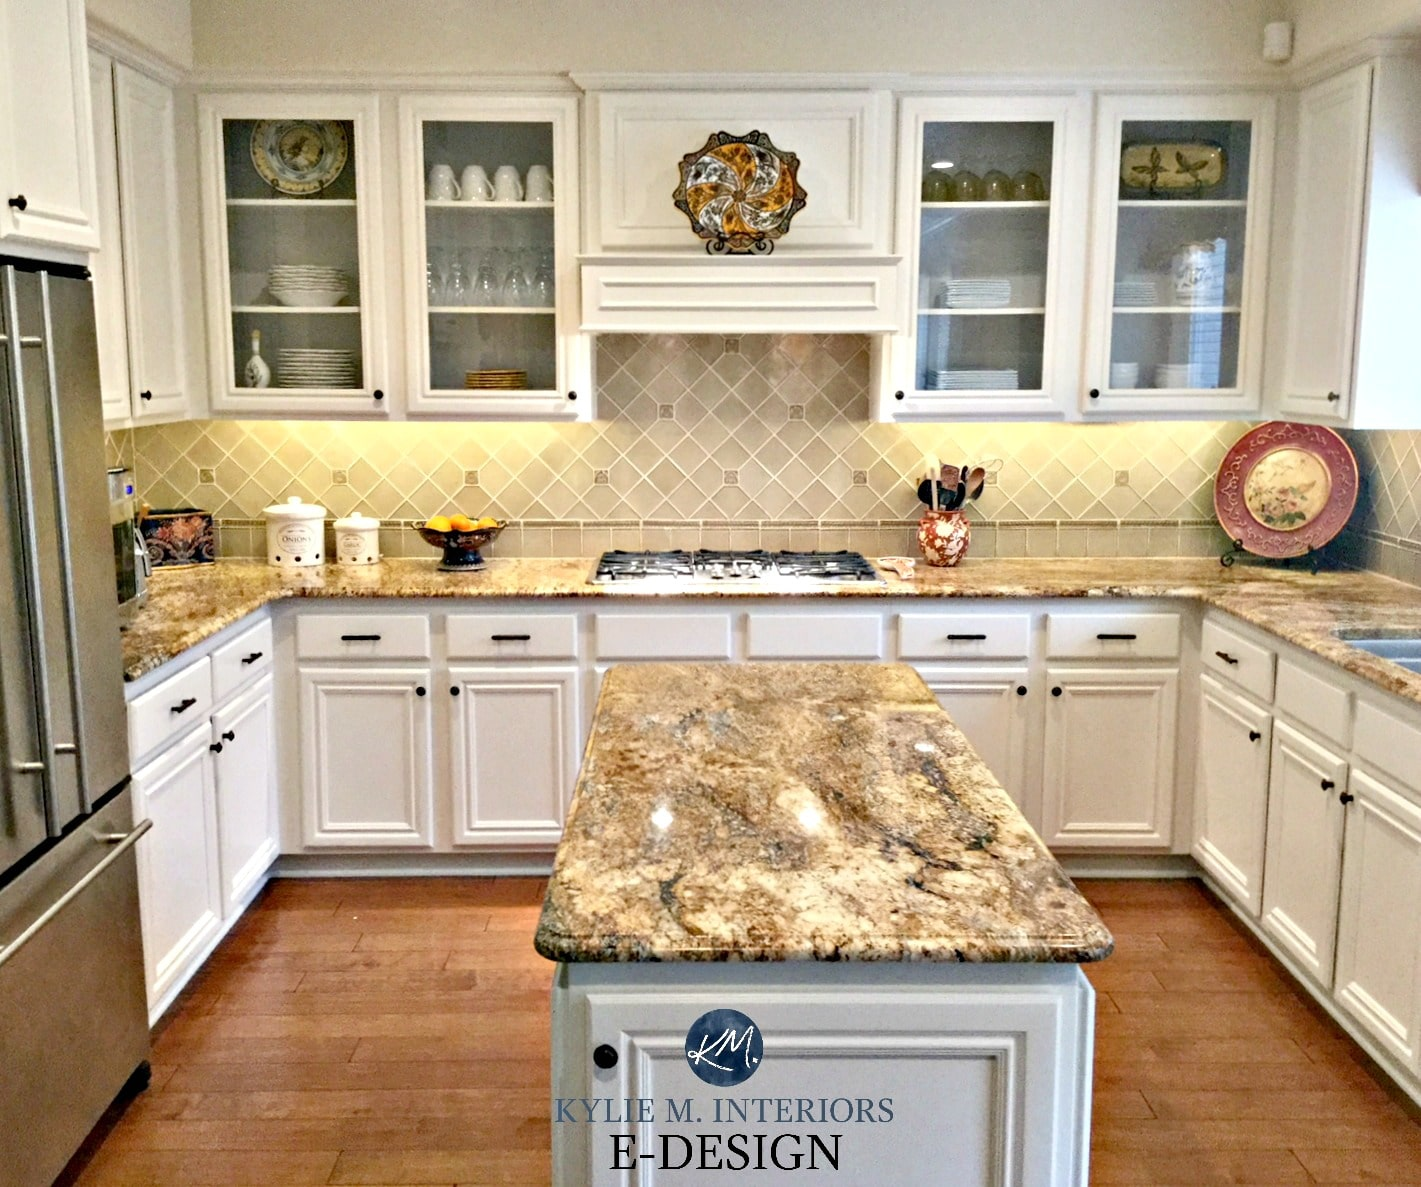 Benjamin Moore Antique White Kitchen Cabinets: Kitchen With Maple Cabinets And Wood Floor Painted